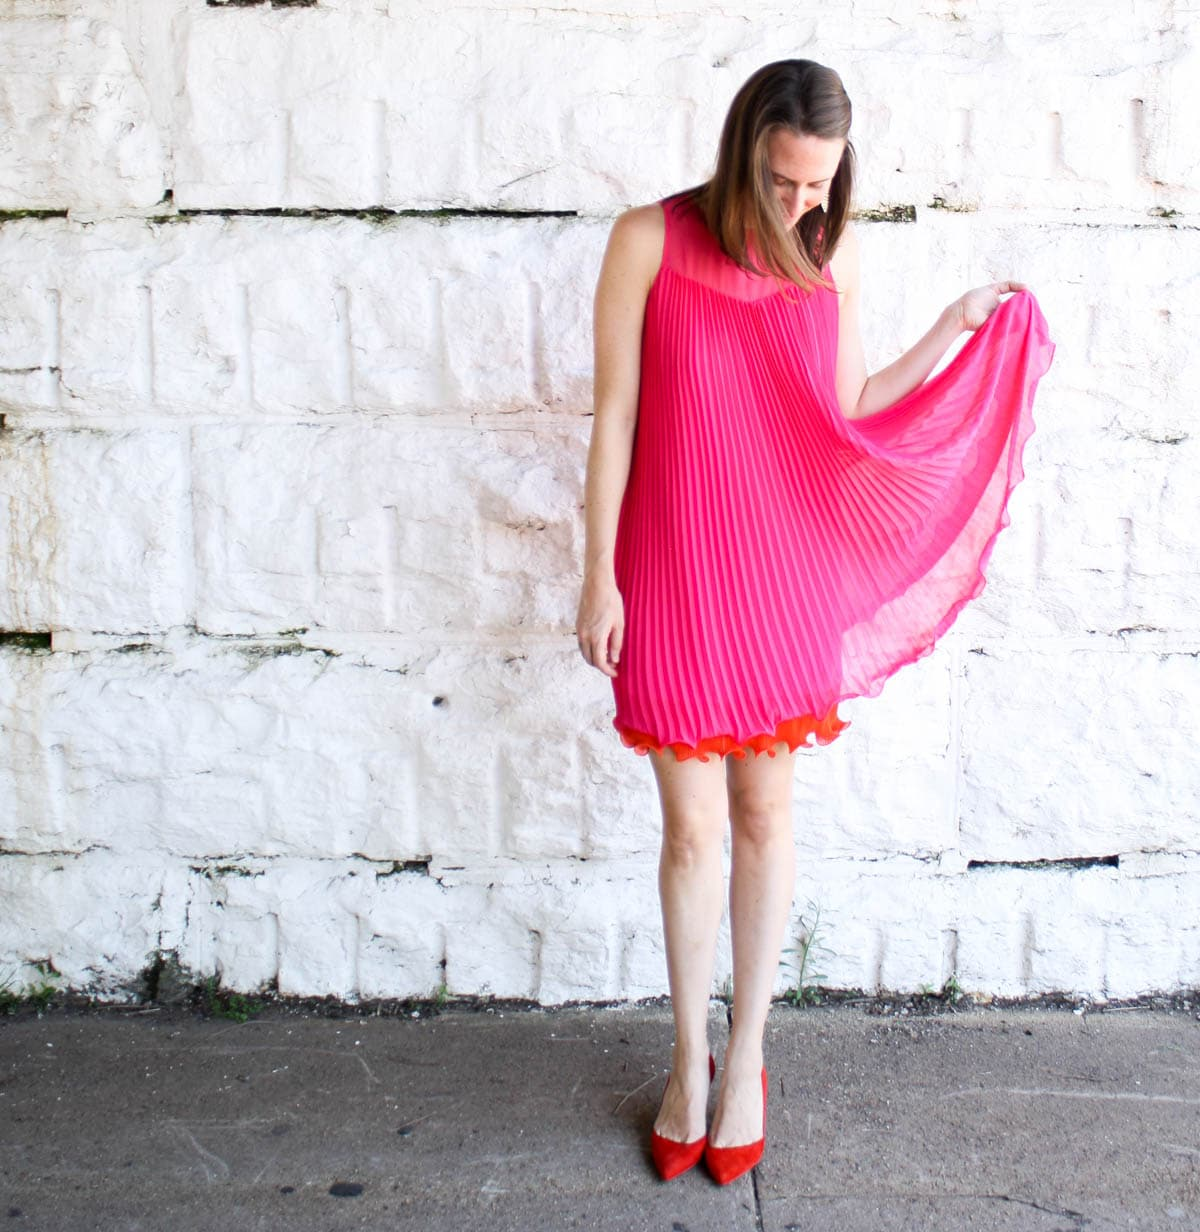 Anthropologie_Top Fashion Bloggers in US_Pink Dress_Dresses for Wedding Season